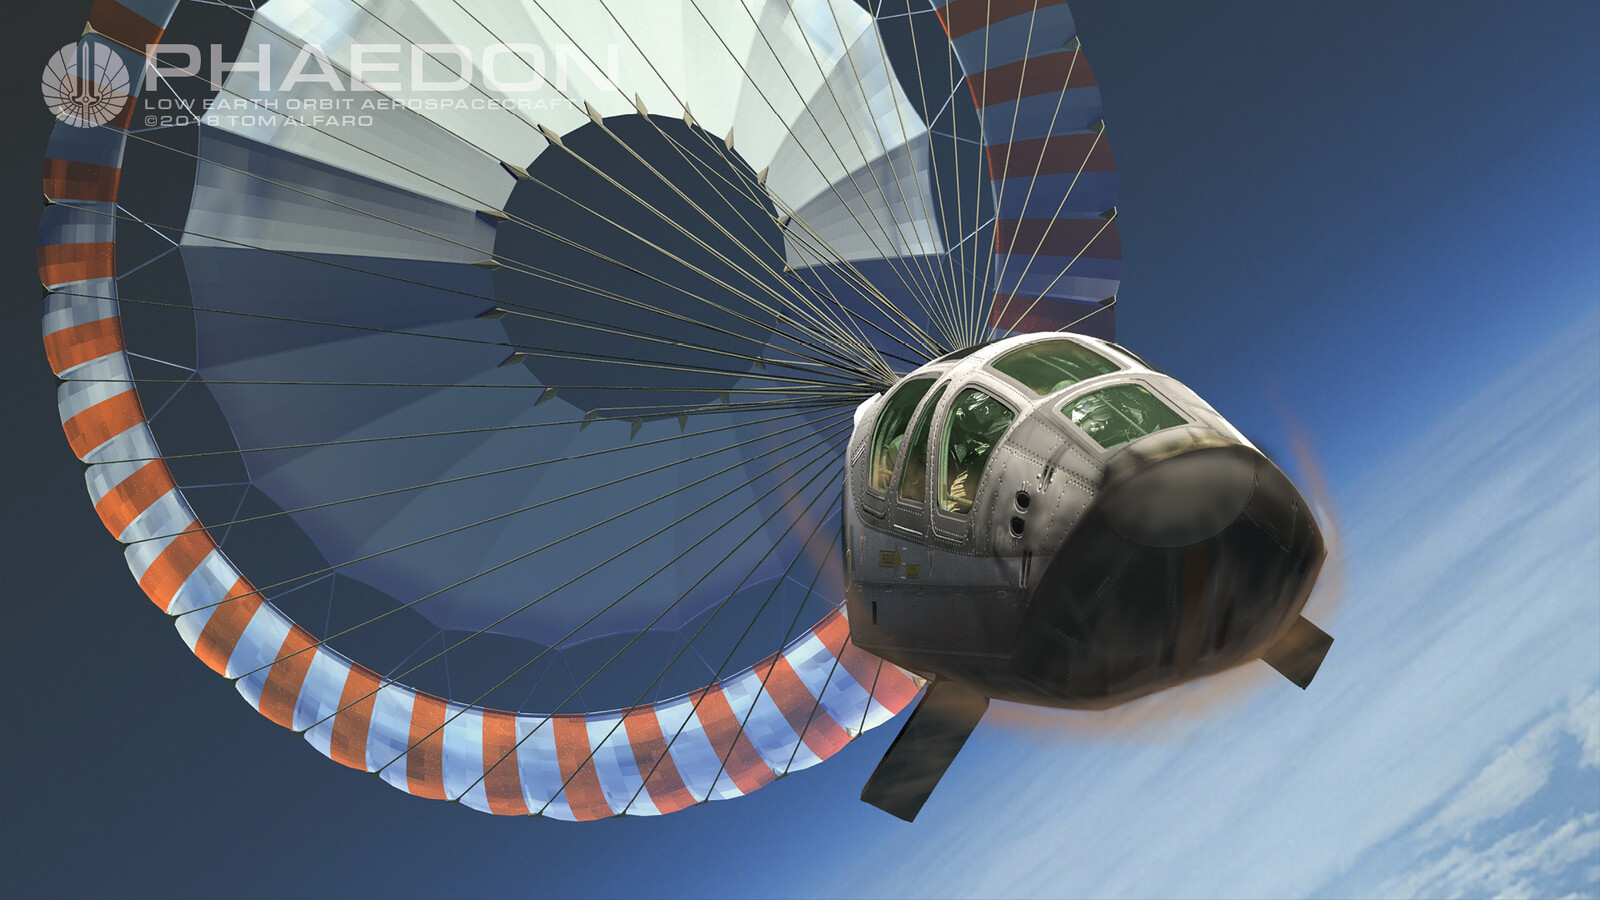 Phaedon Crew Escape Module deploys